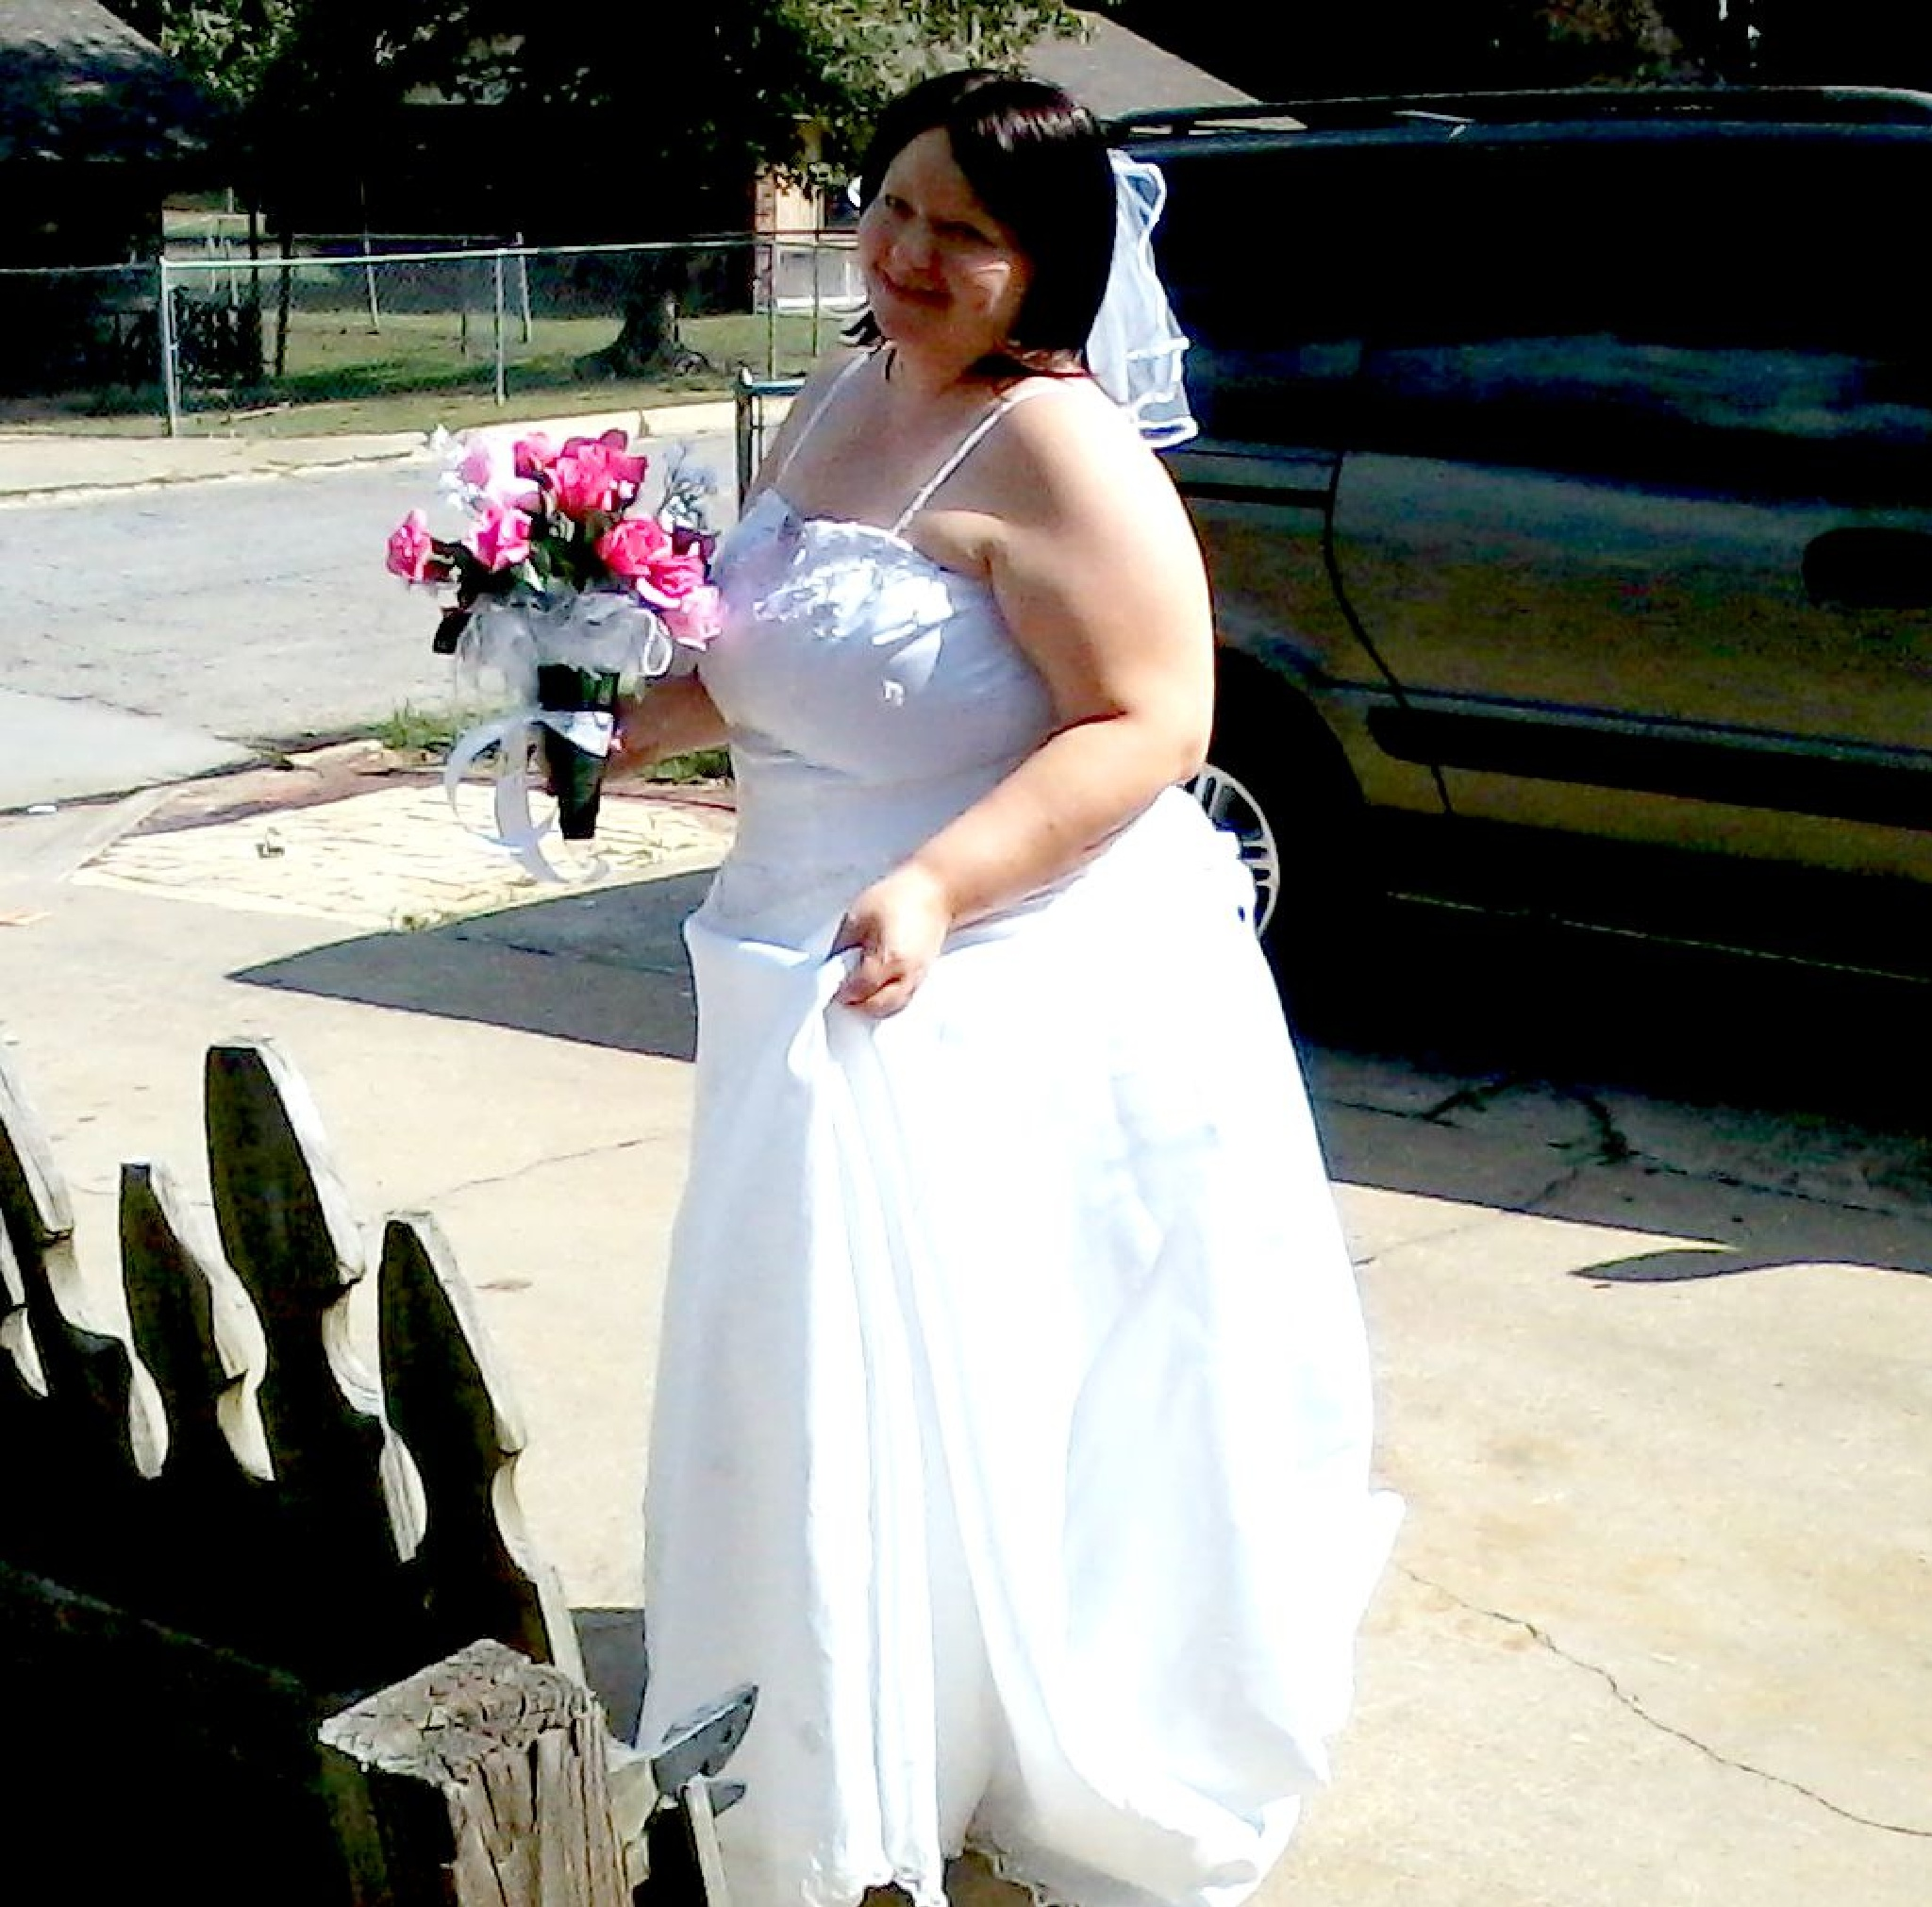 Me in Wedding Dress by cheryl.lowery.r